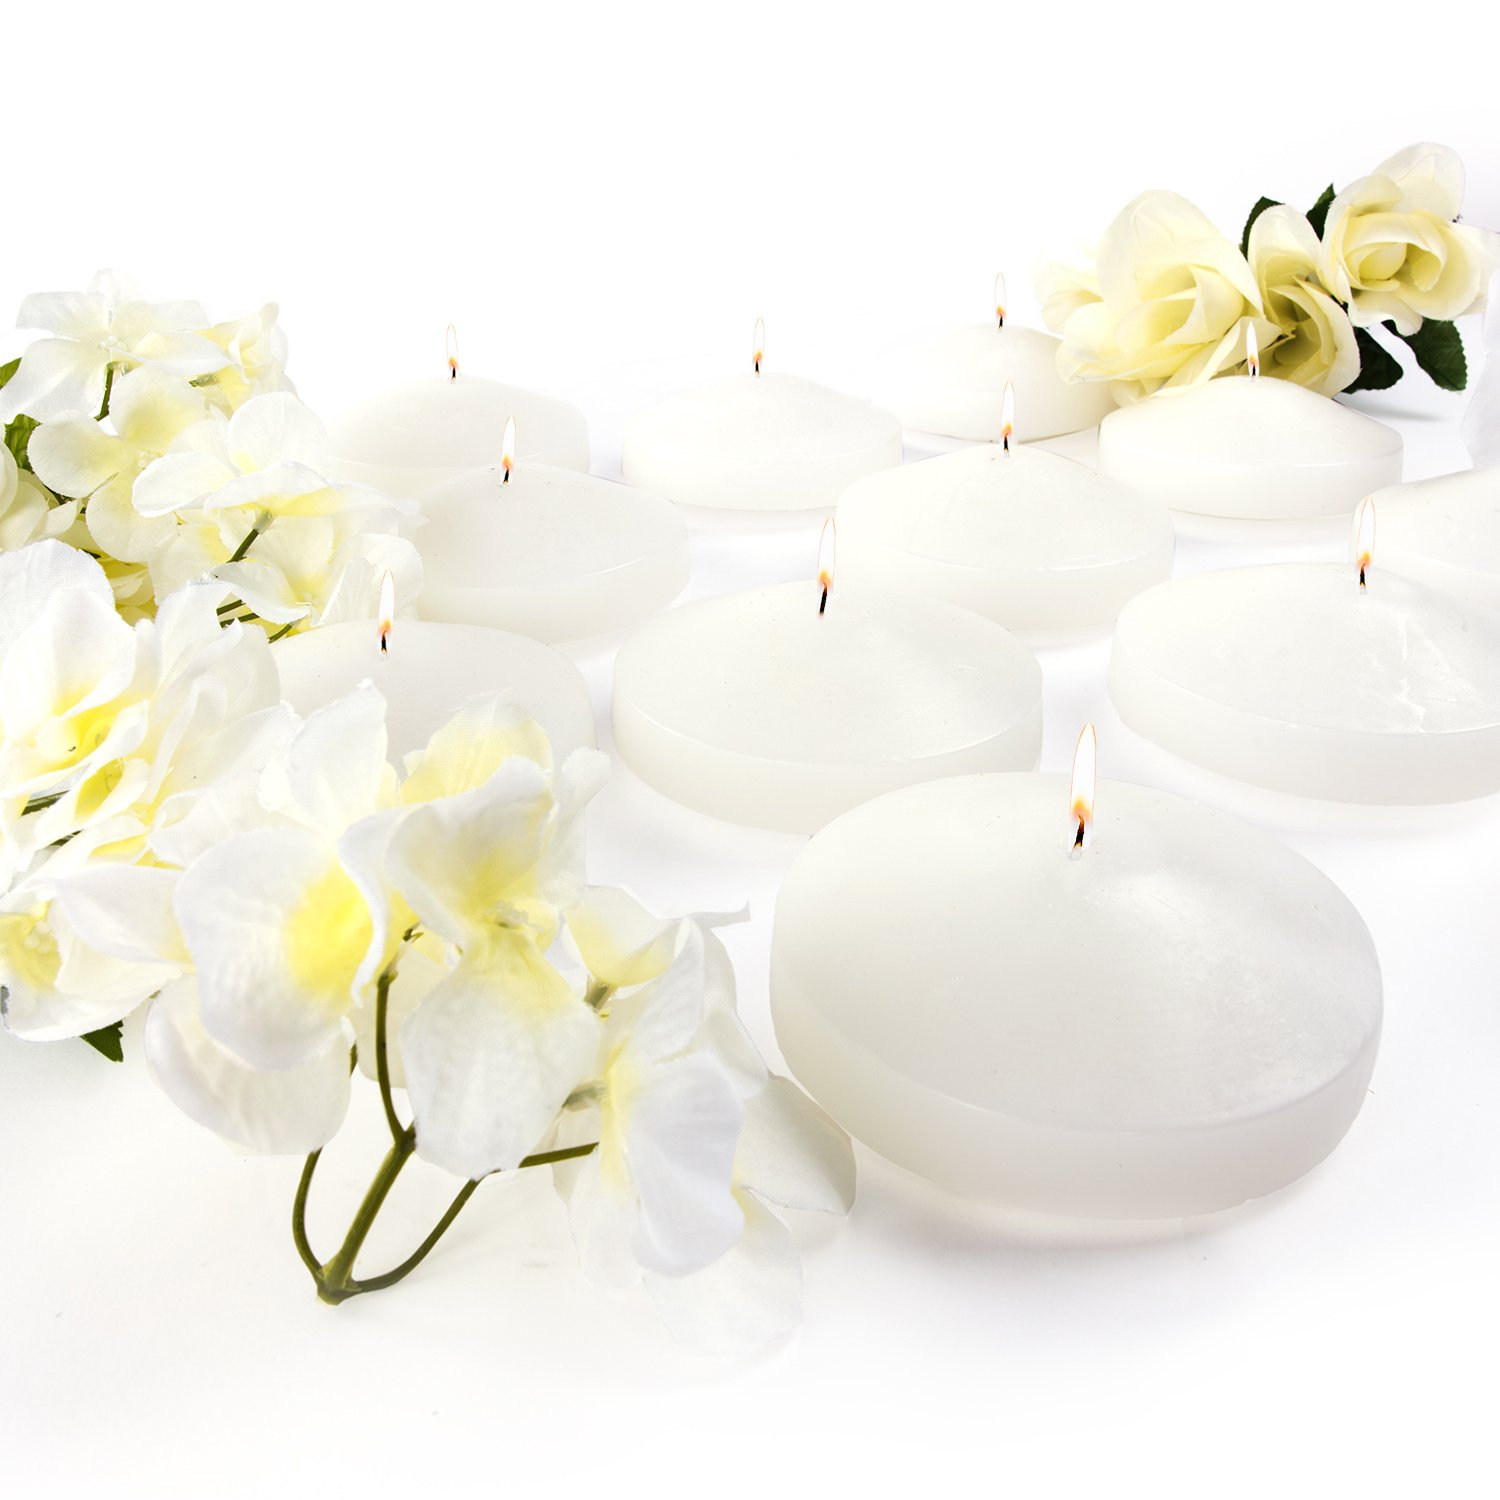 3.25'' White Unscented Dripless Floating Tealight Shape Candles Set (24 Pack) by Super Z Outlet